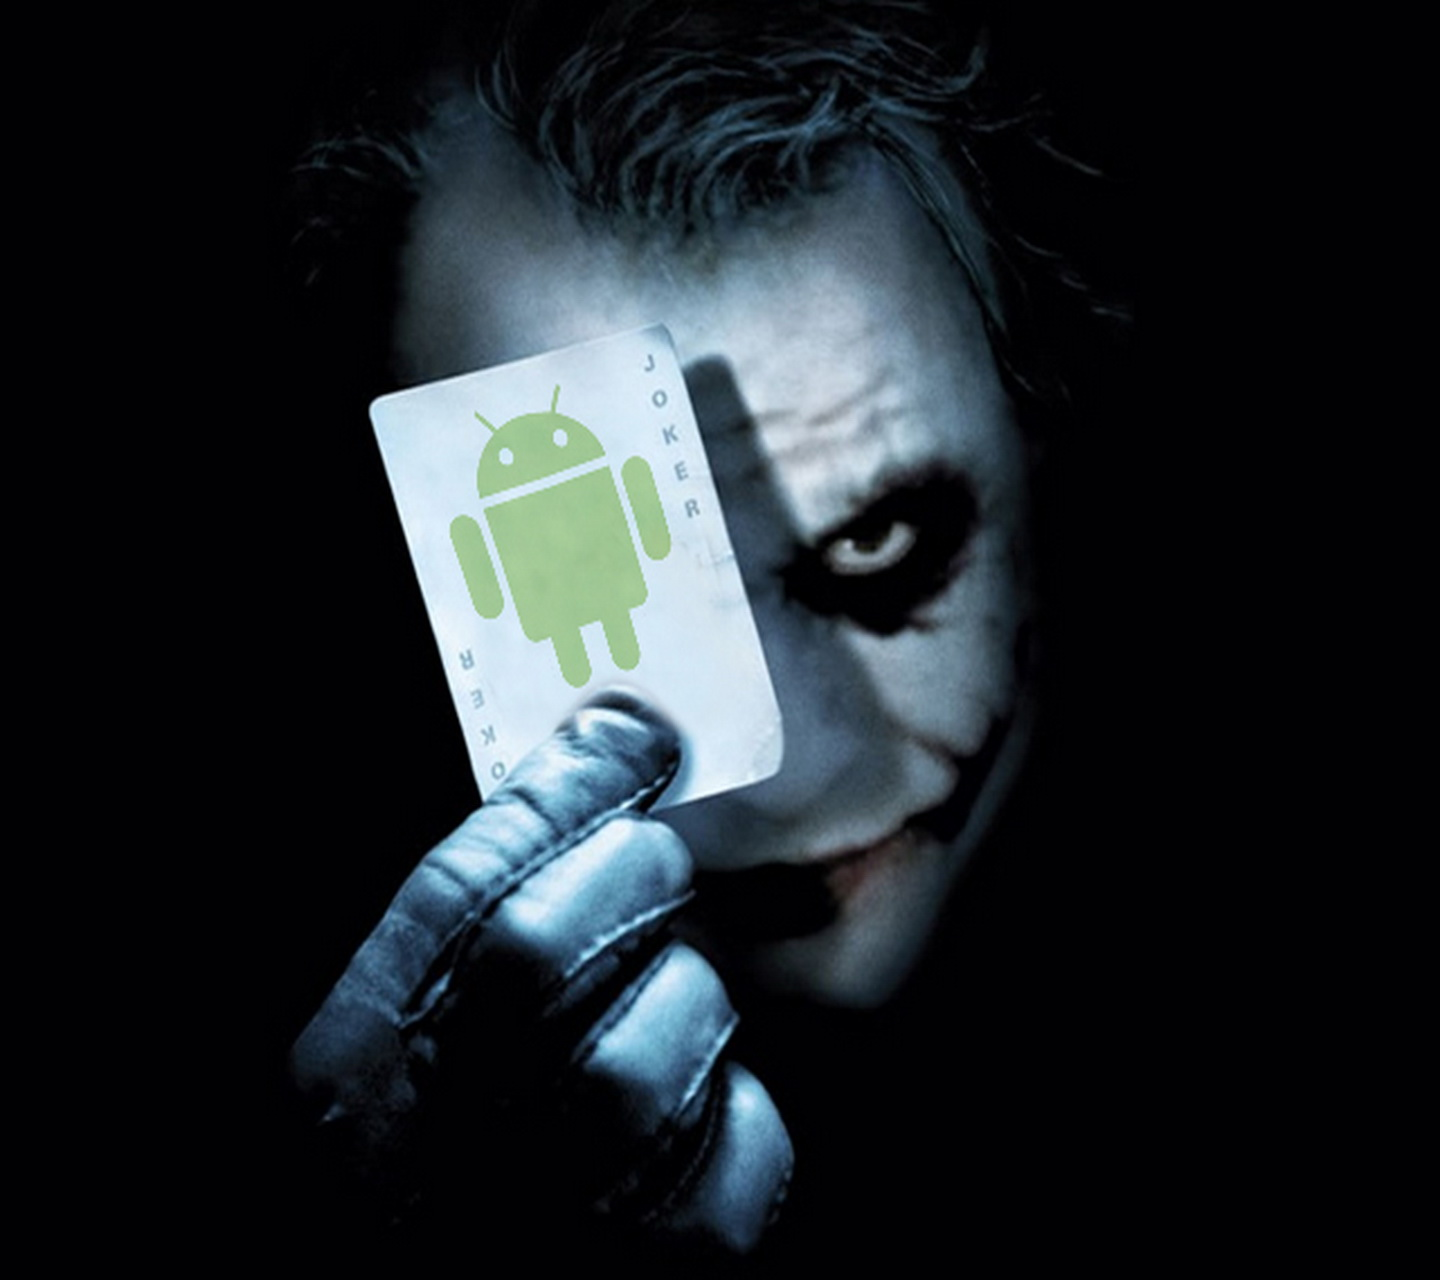 Android robot joker card hd wallpaper hd wallpaper background hd view original size android robot joker card hd wallpaper hd forwallpaperscom voltagebd Images